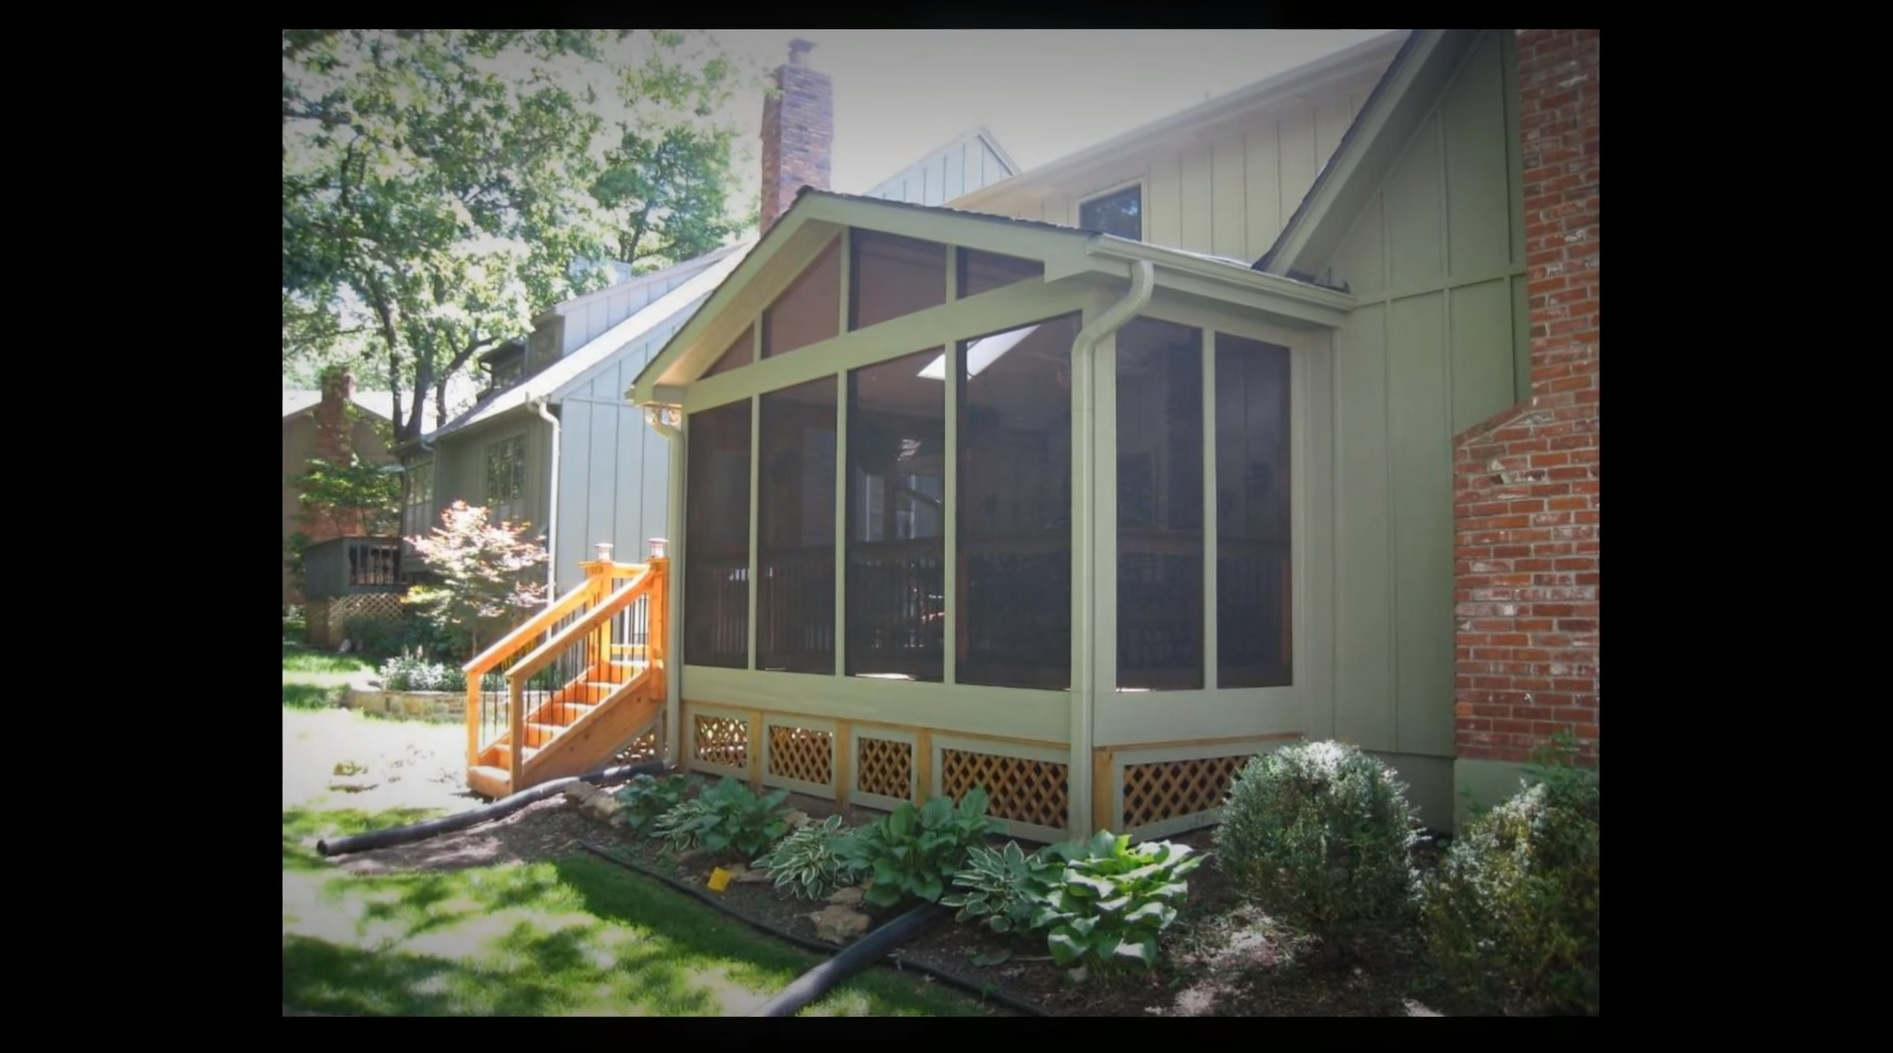 Kansas City Porch Roof Styles: Gable, Shed or Flat Thumbnail